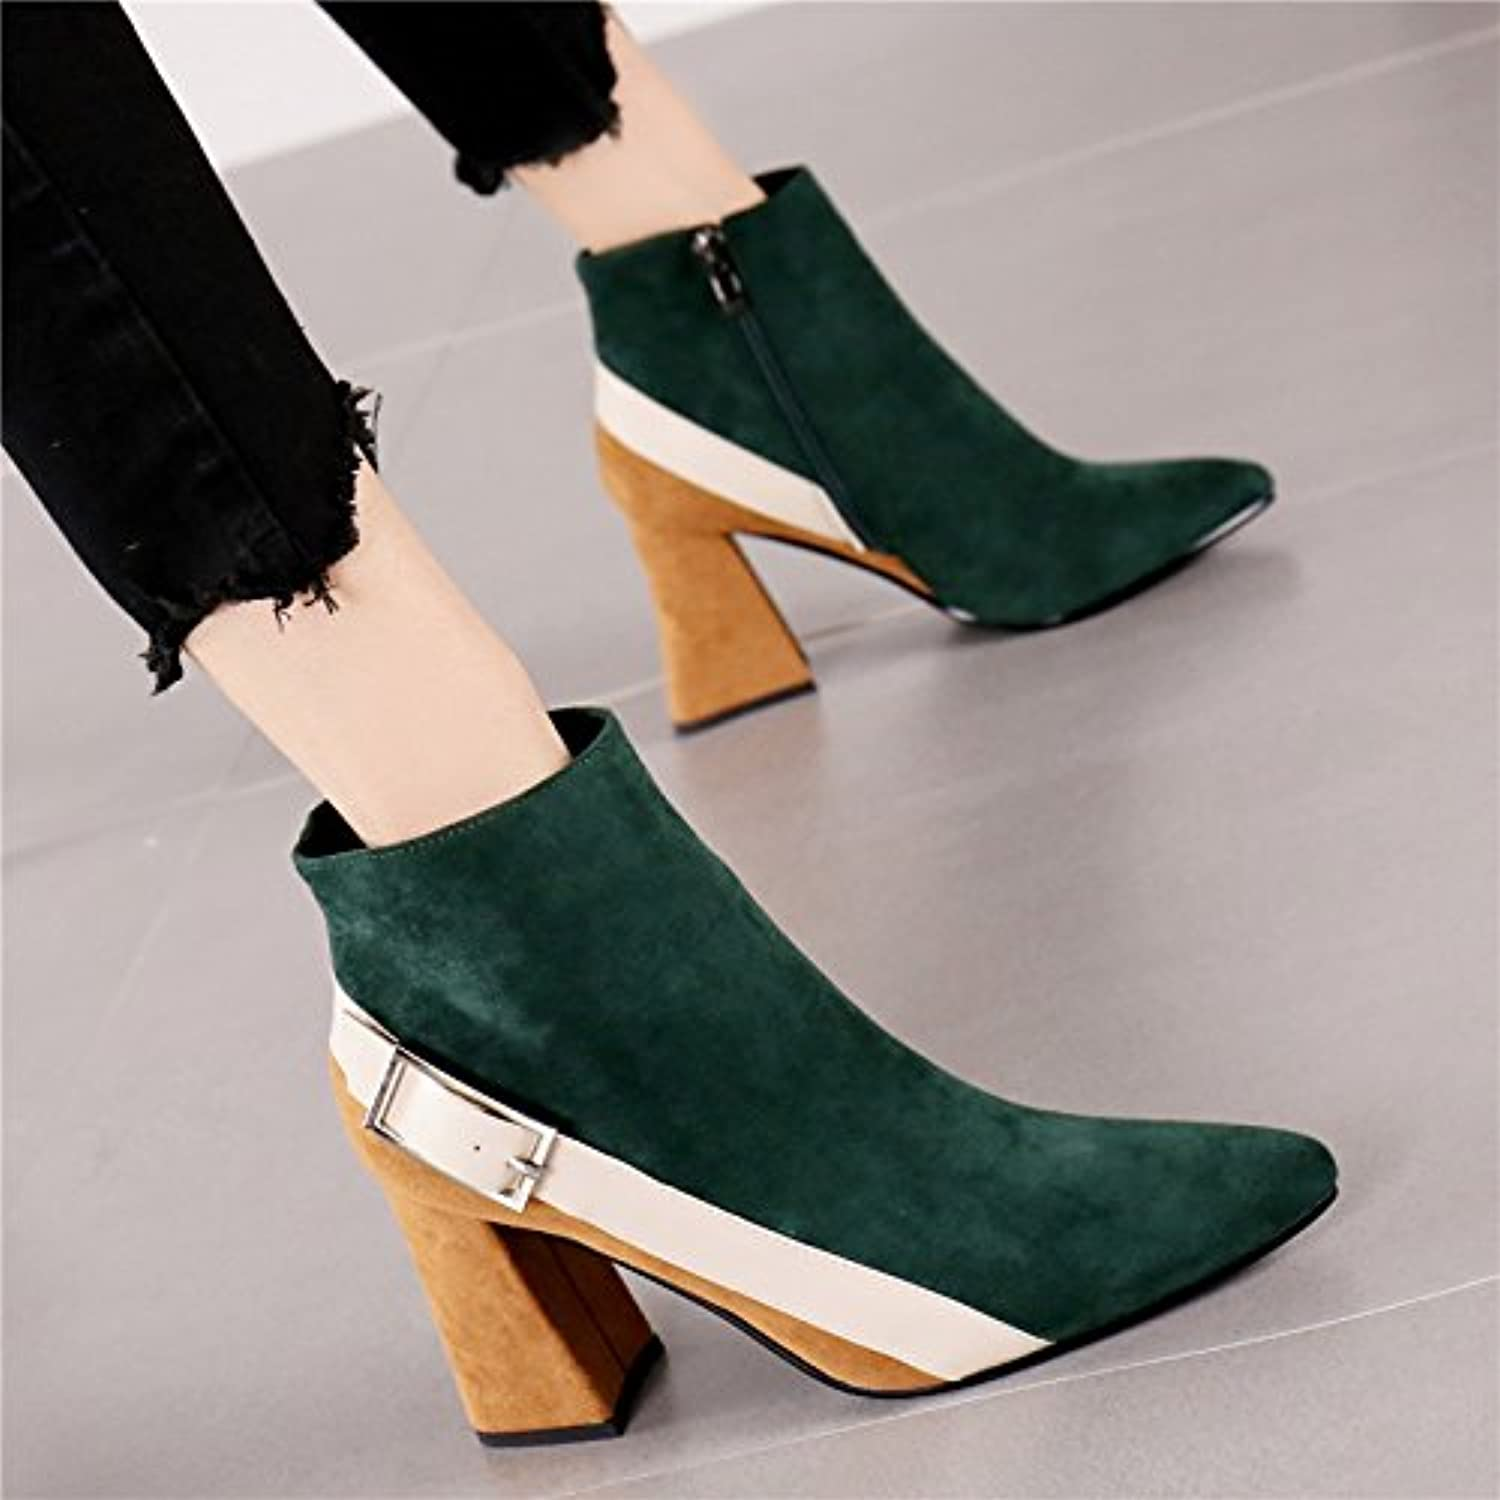 LGK&FA Taskmaster Old Suede High Heel Shoes Female Fashion Color Matching Buckle Martin Boots Short Boots. Thirty-Four...